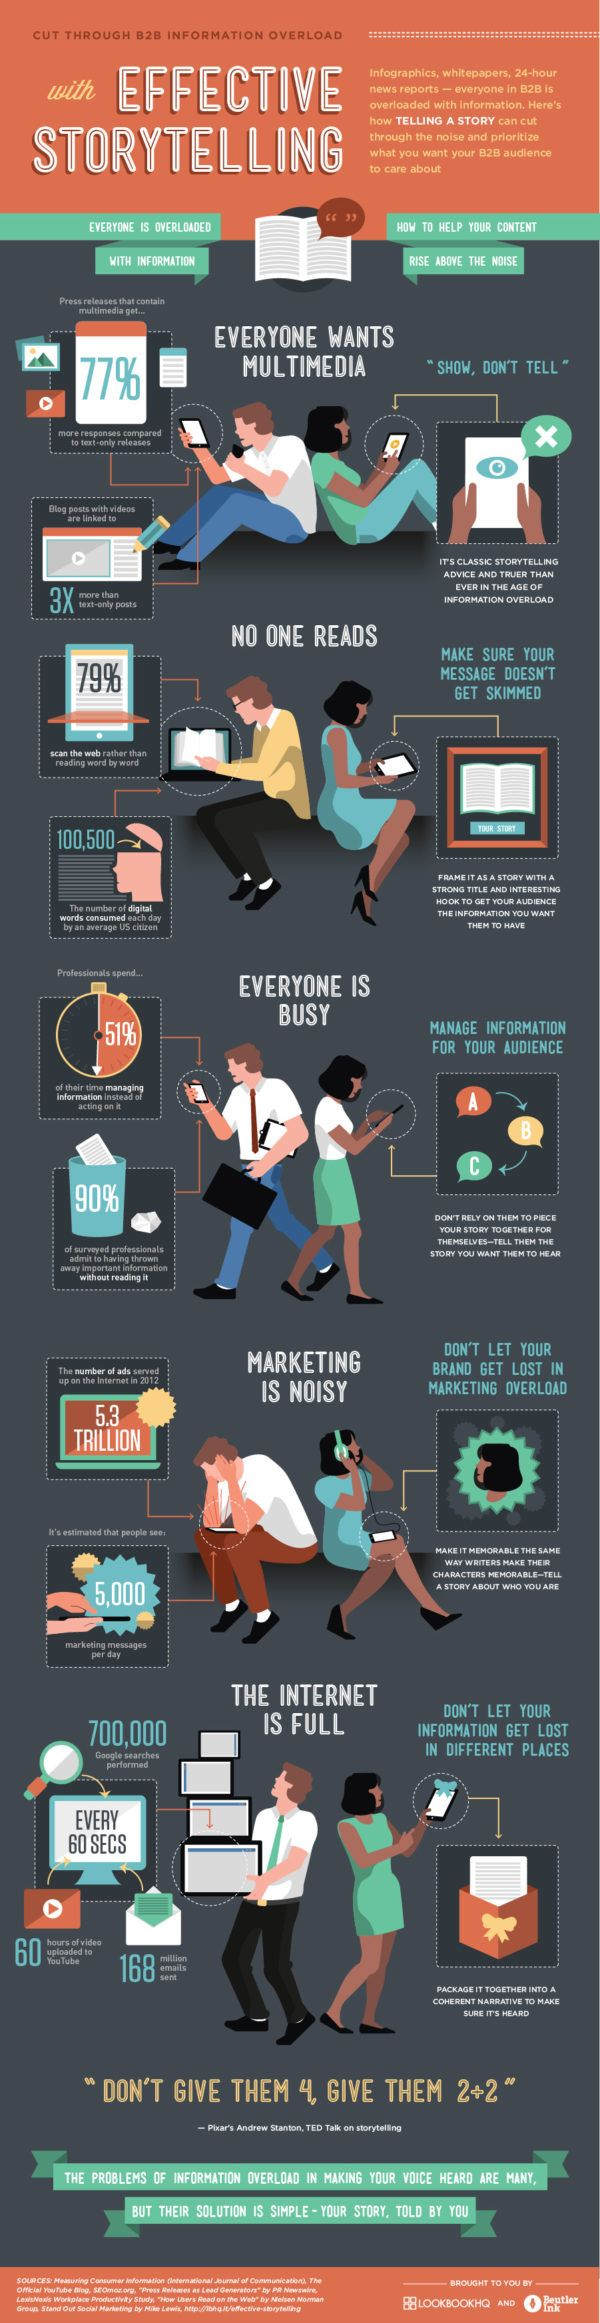 How to tell compelling stories in times when everyone is busy #infographic